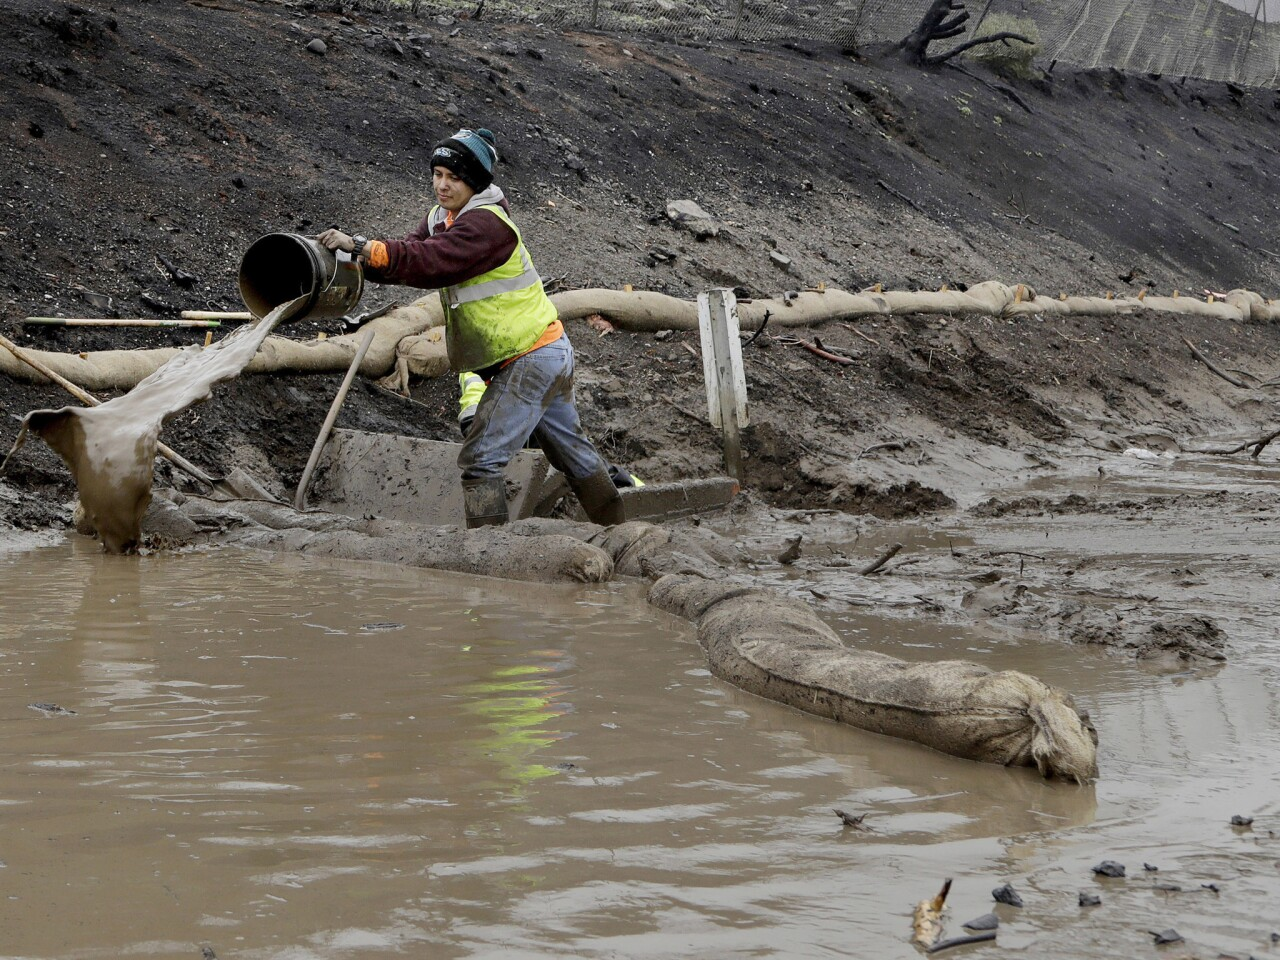 Rain, mudslides and road closures in the Southland